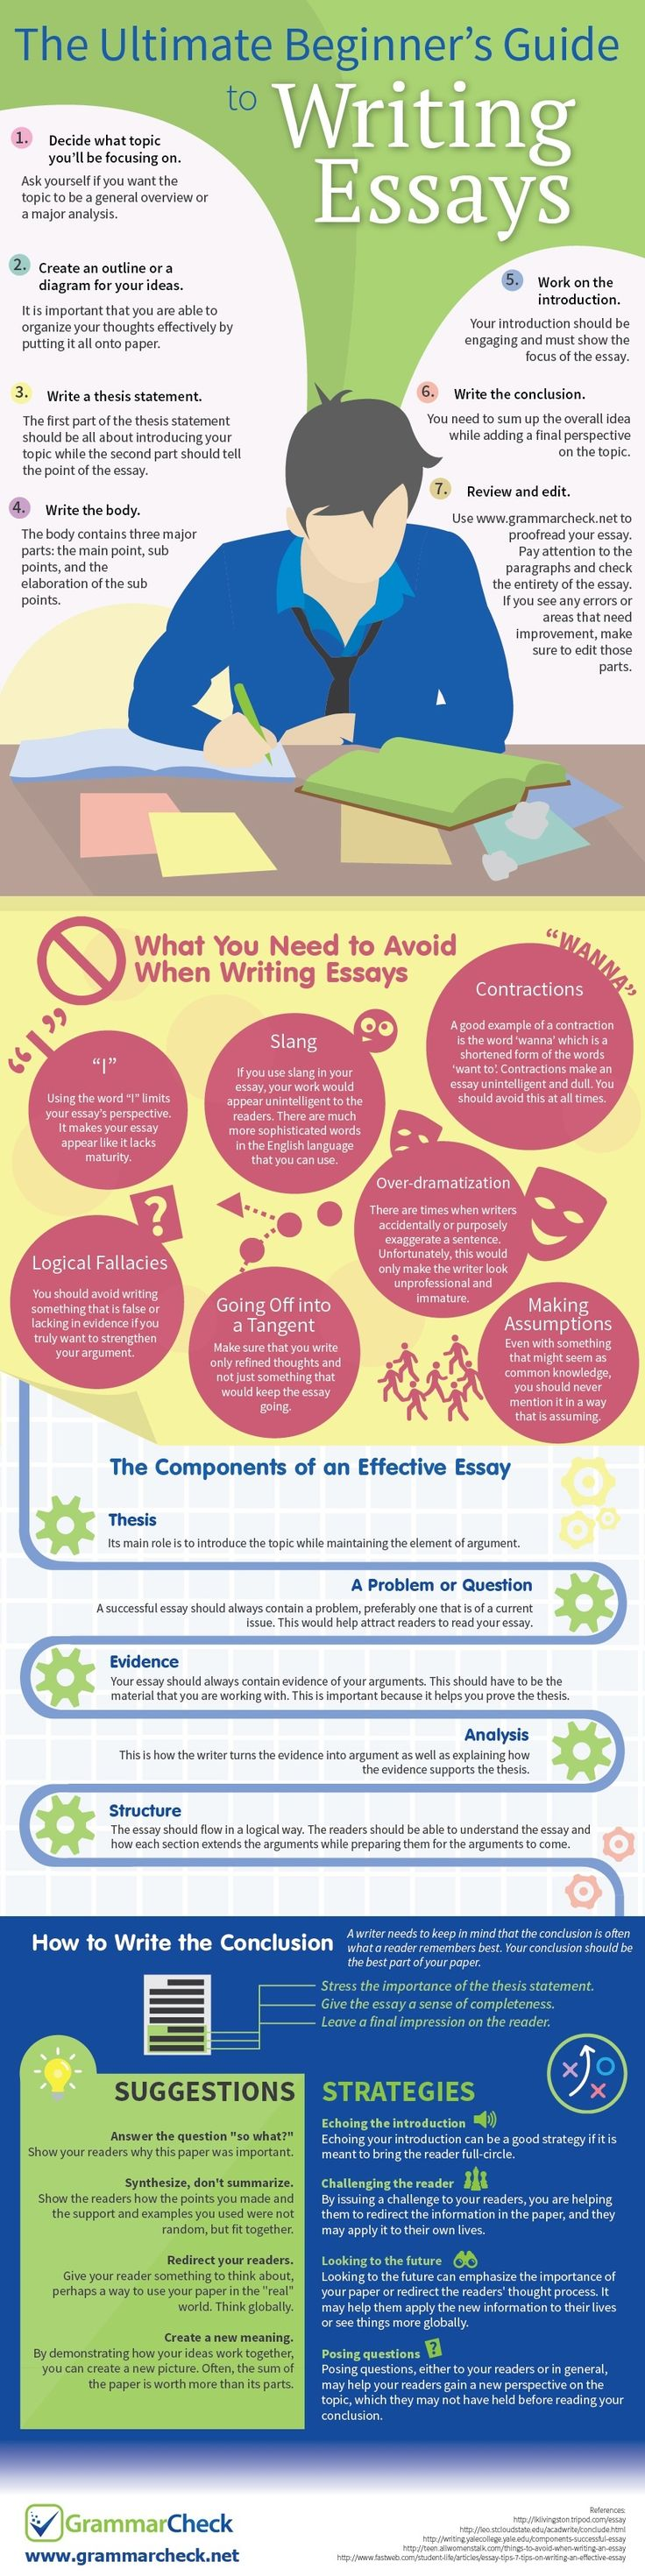 best grammar check infographics images english the ultimate beginner s guide to writing essays infographic